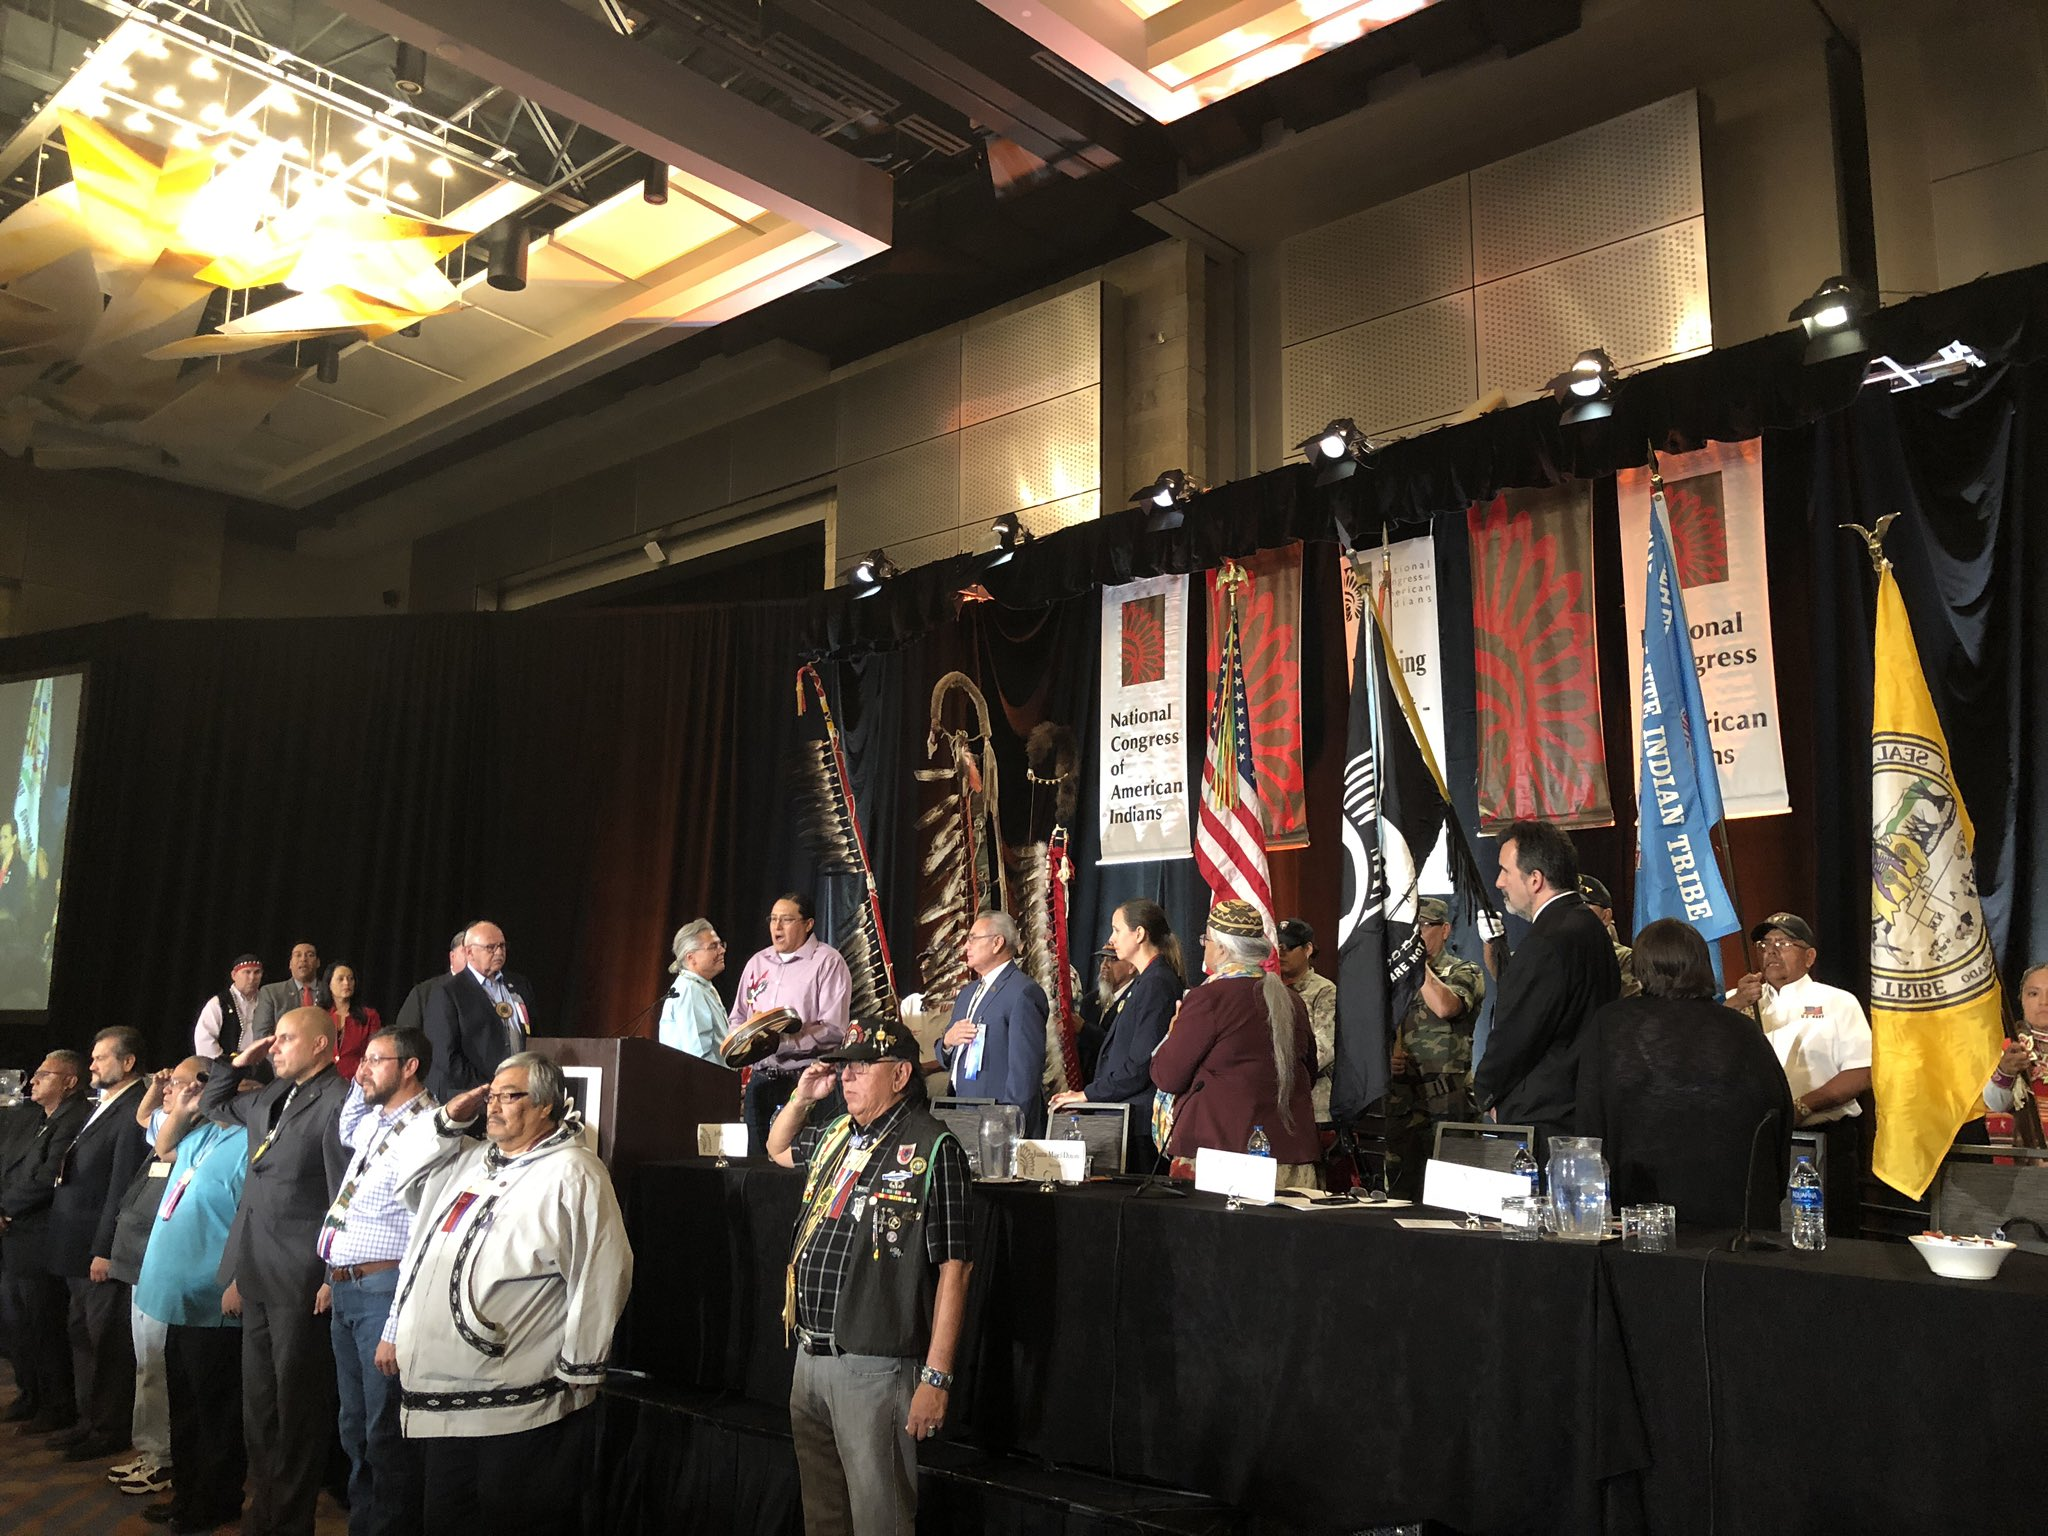 Recap: Day 1 of National Congress of American Indians #NCAI75